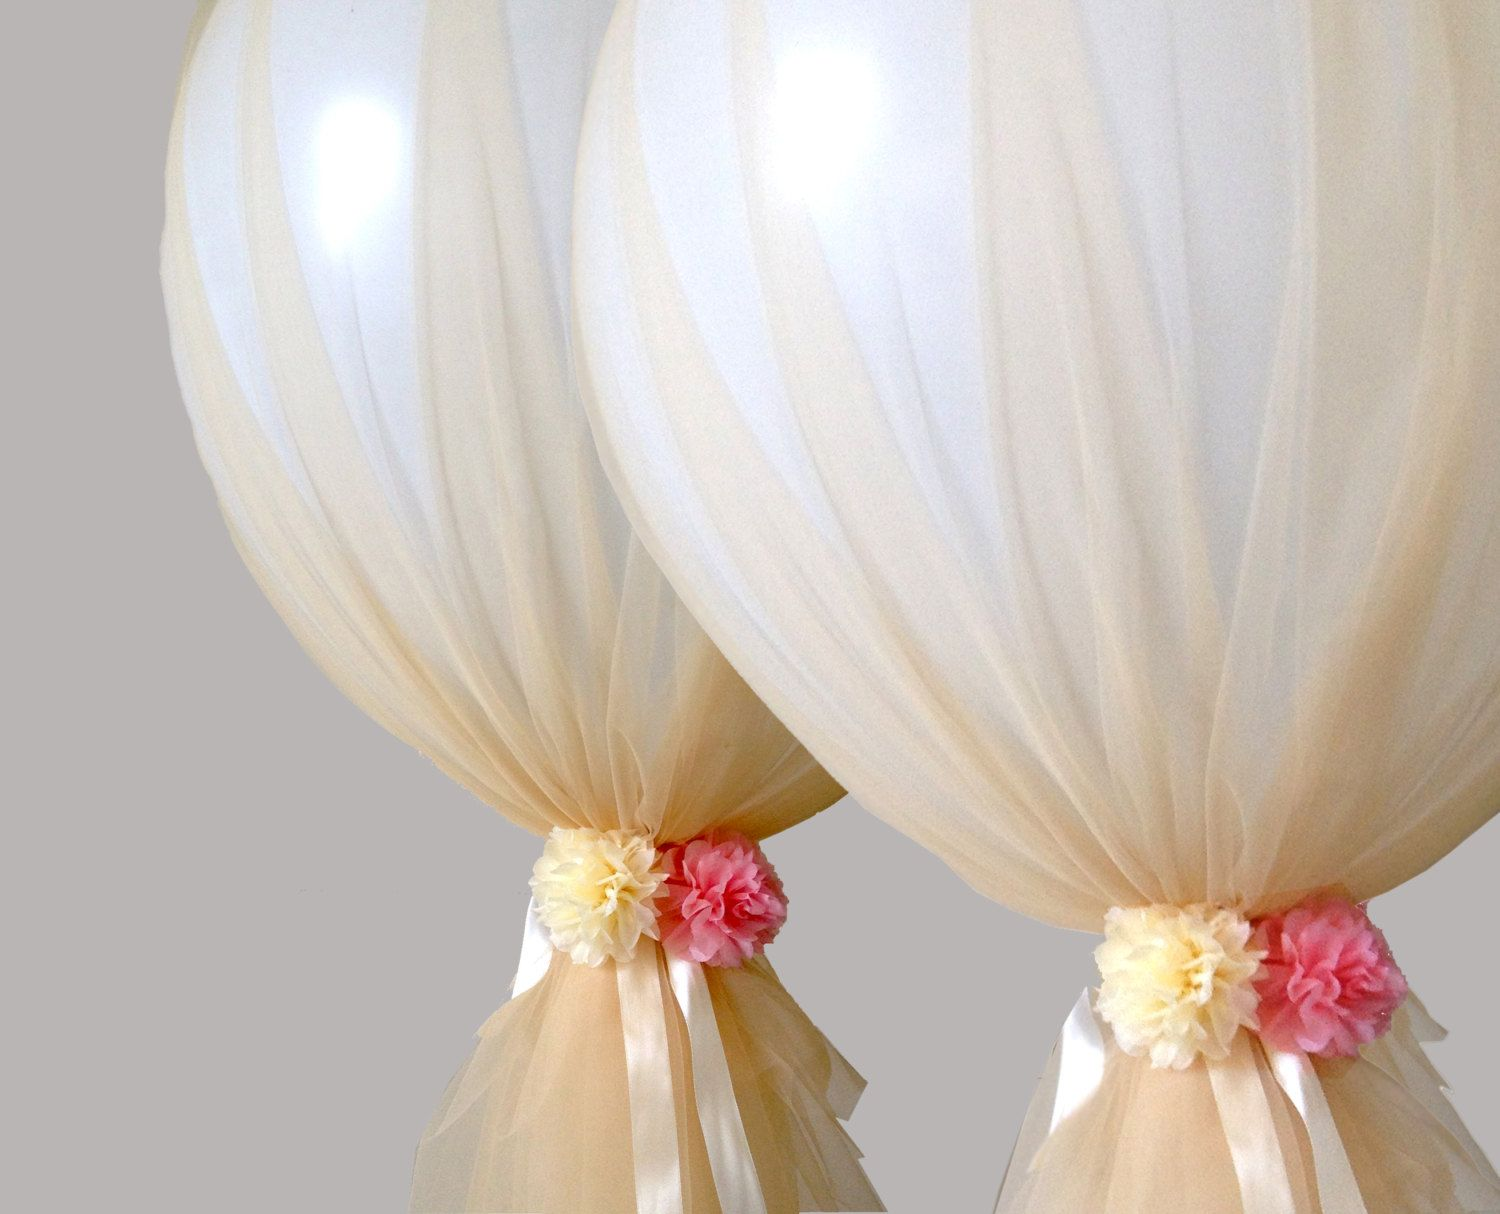 Wedding decorations tulle and lights  Tulle Balloon  party ideas for vale  Pinterest  Tulle balloons